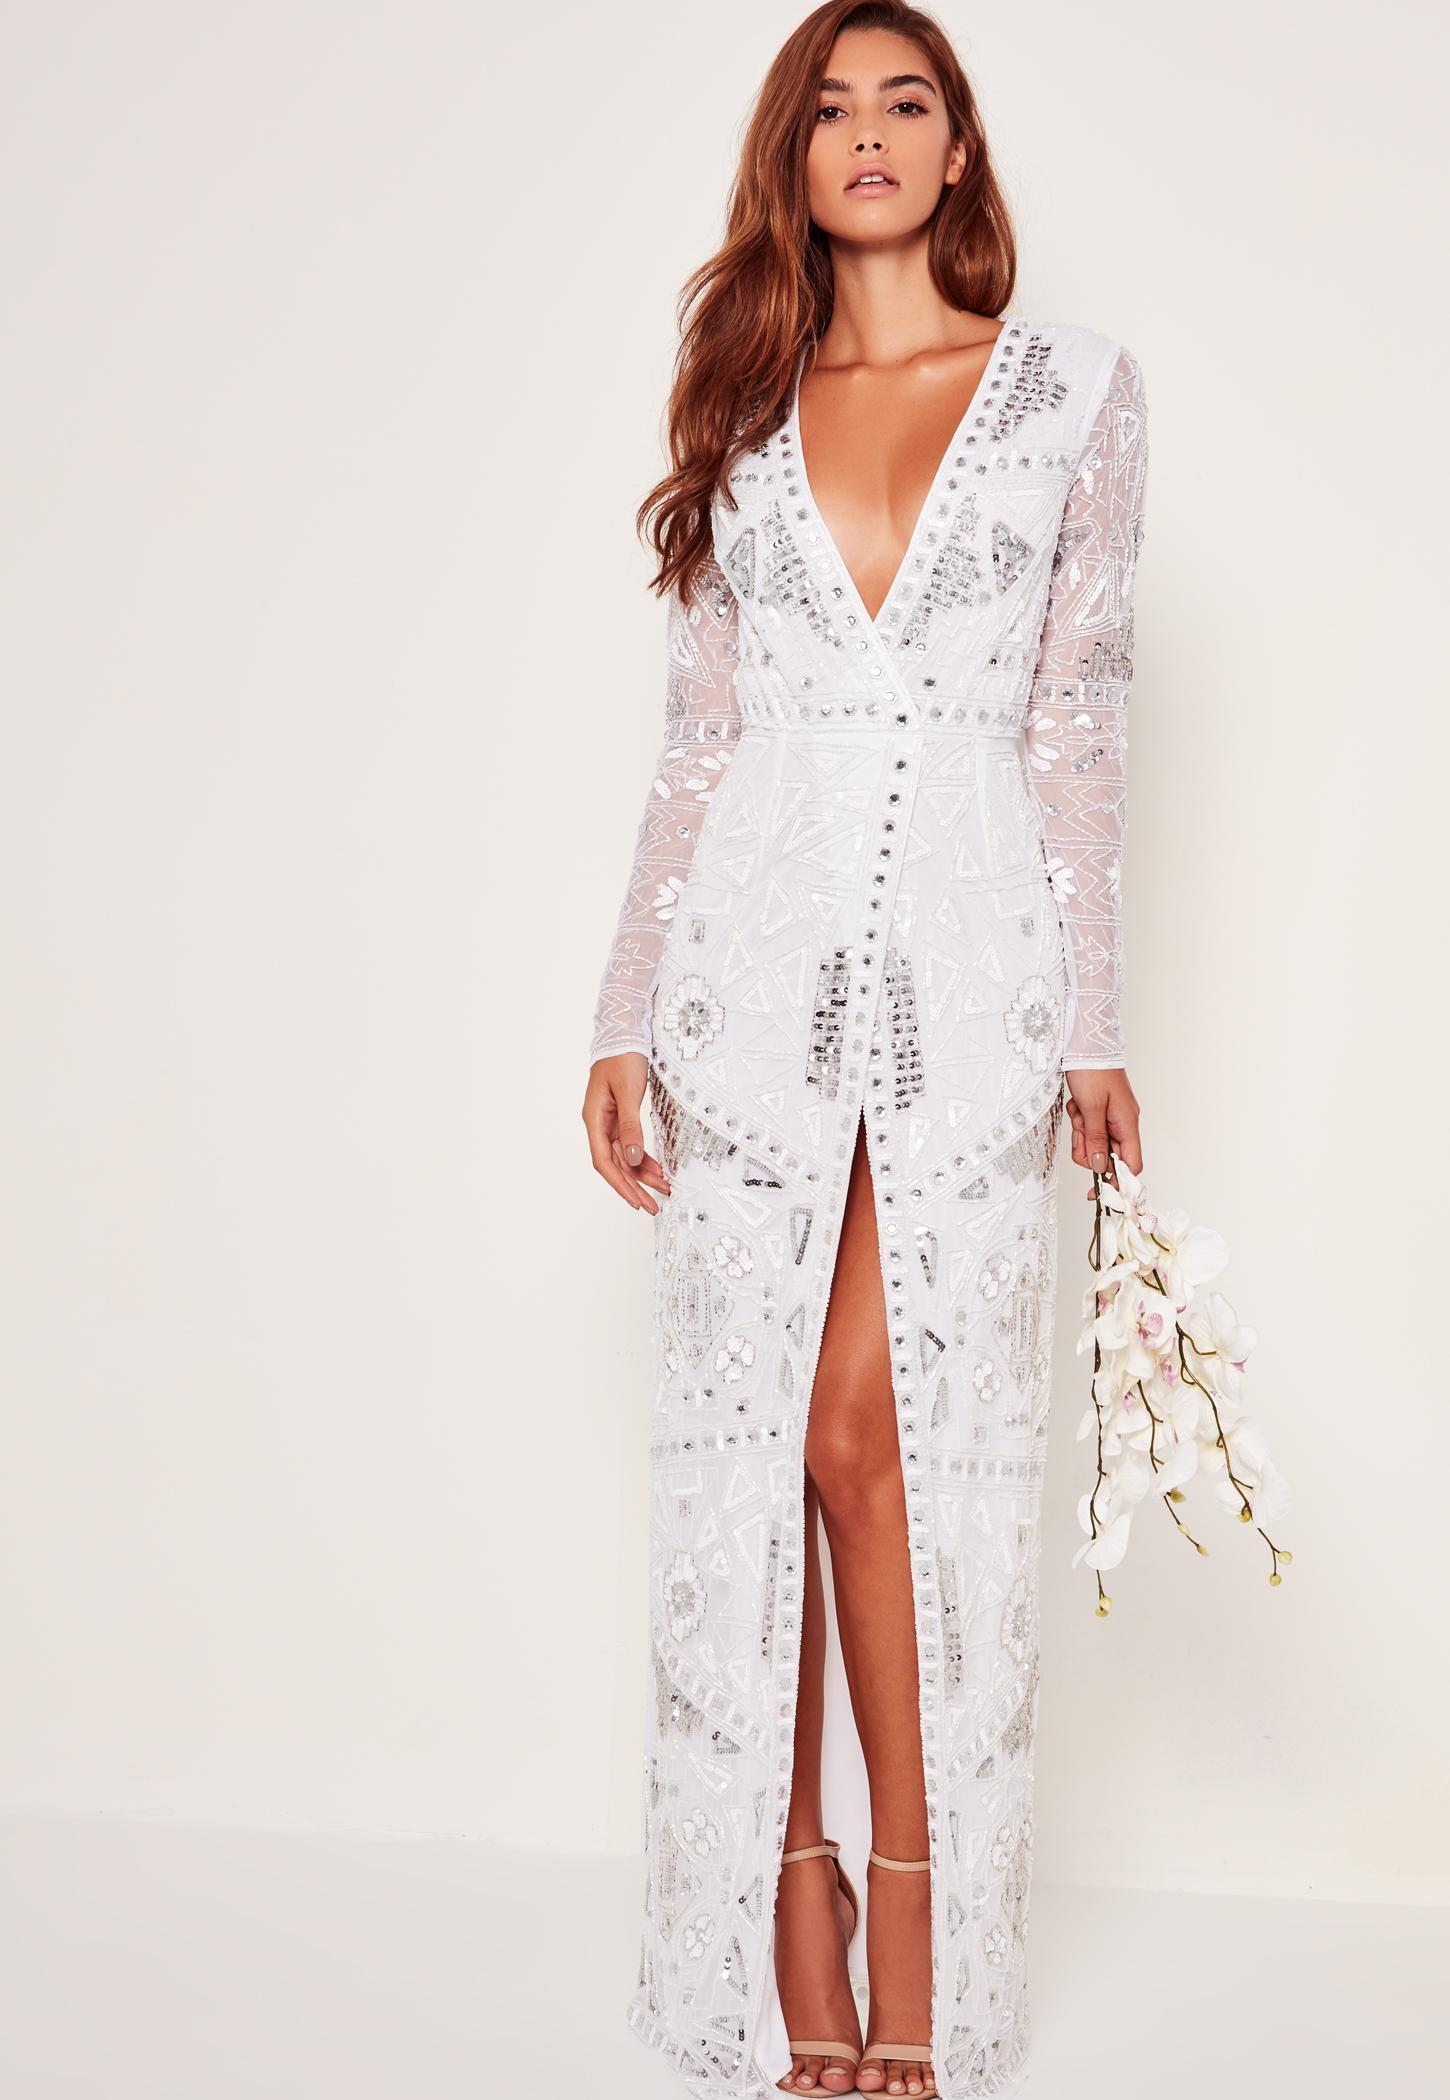 Lyst Missguided Bridal Sequin Wrap Maxi Dress White In White